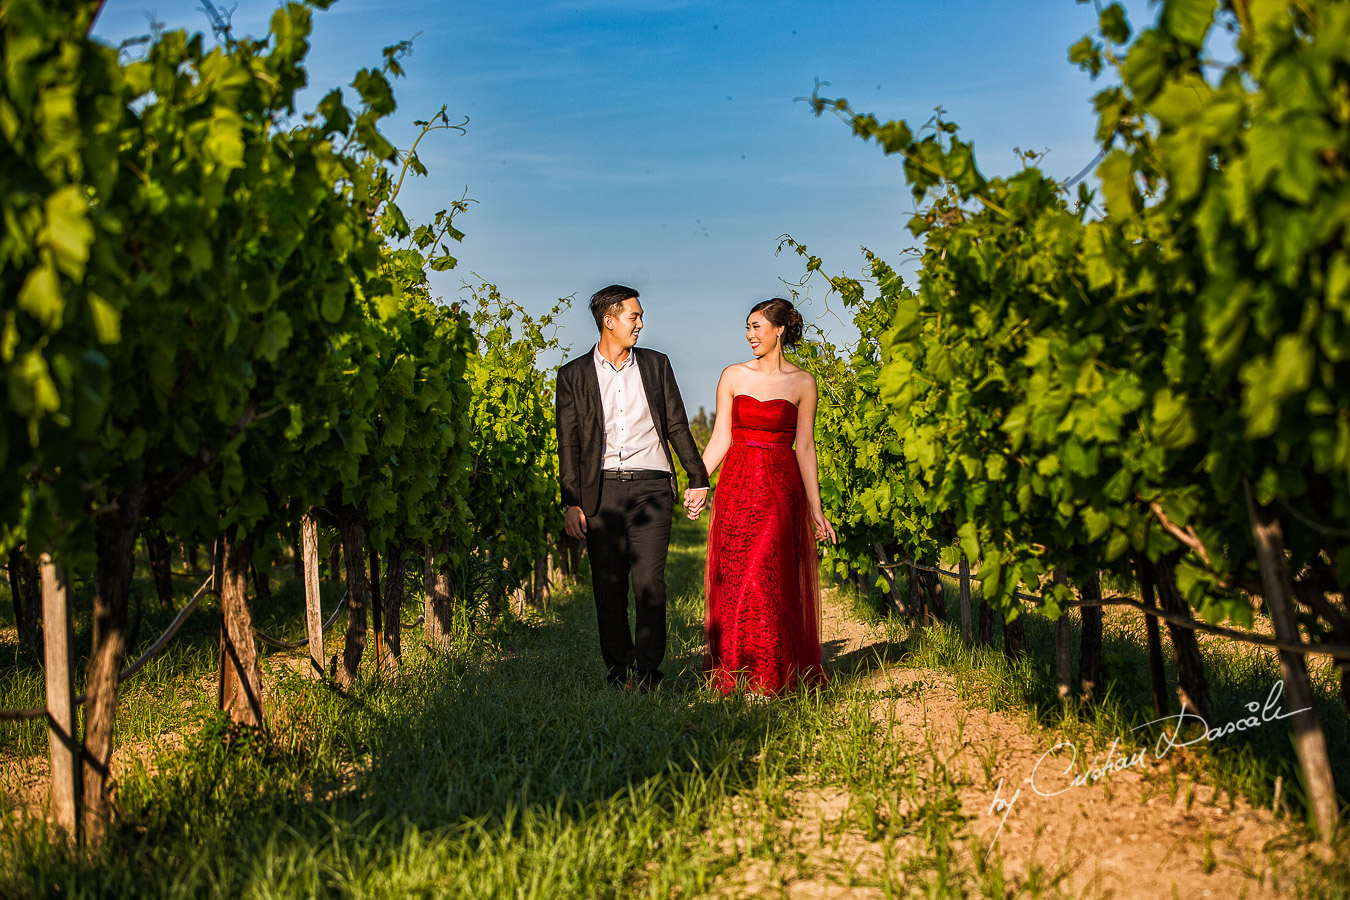 Pre-wedding Photography in Cyprus - 13